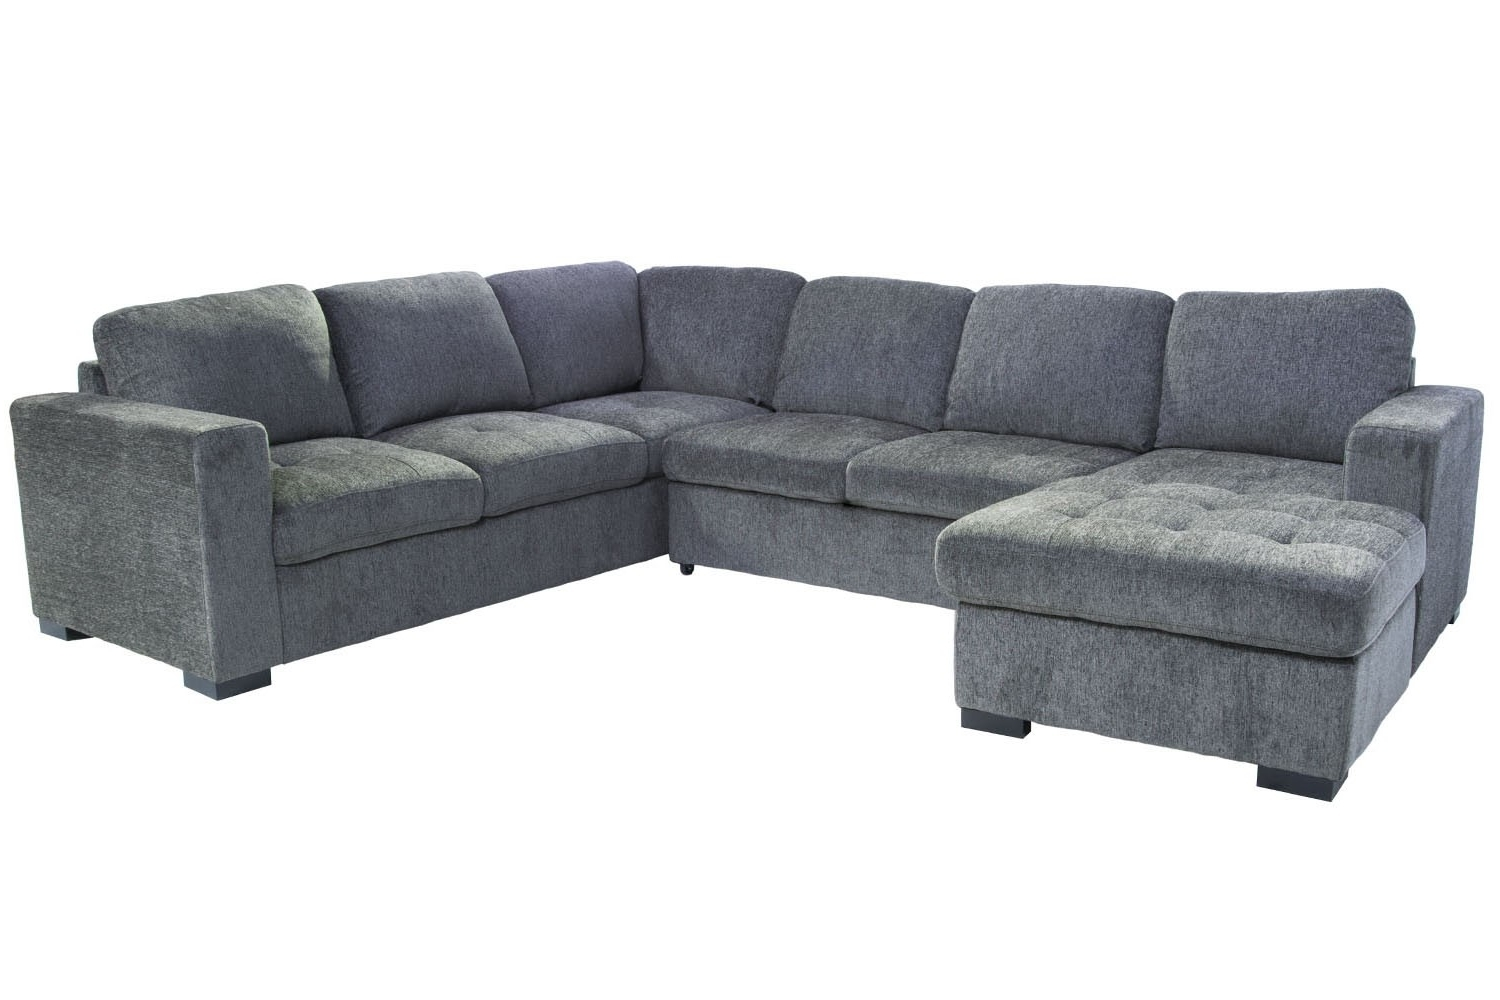 Claire 3 Piece Left Facing Chaise Sectional (View 7 of 15)